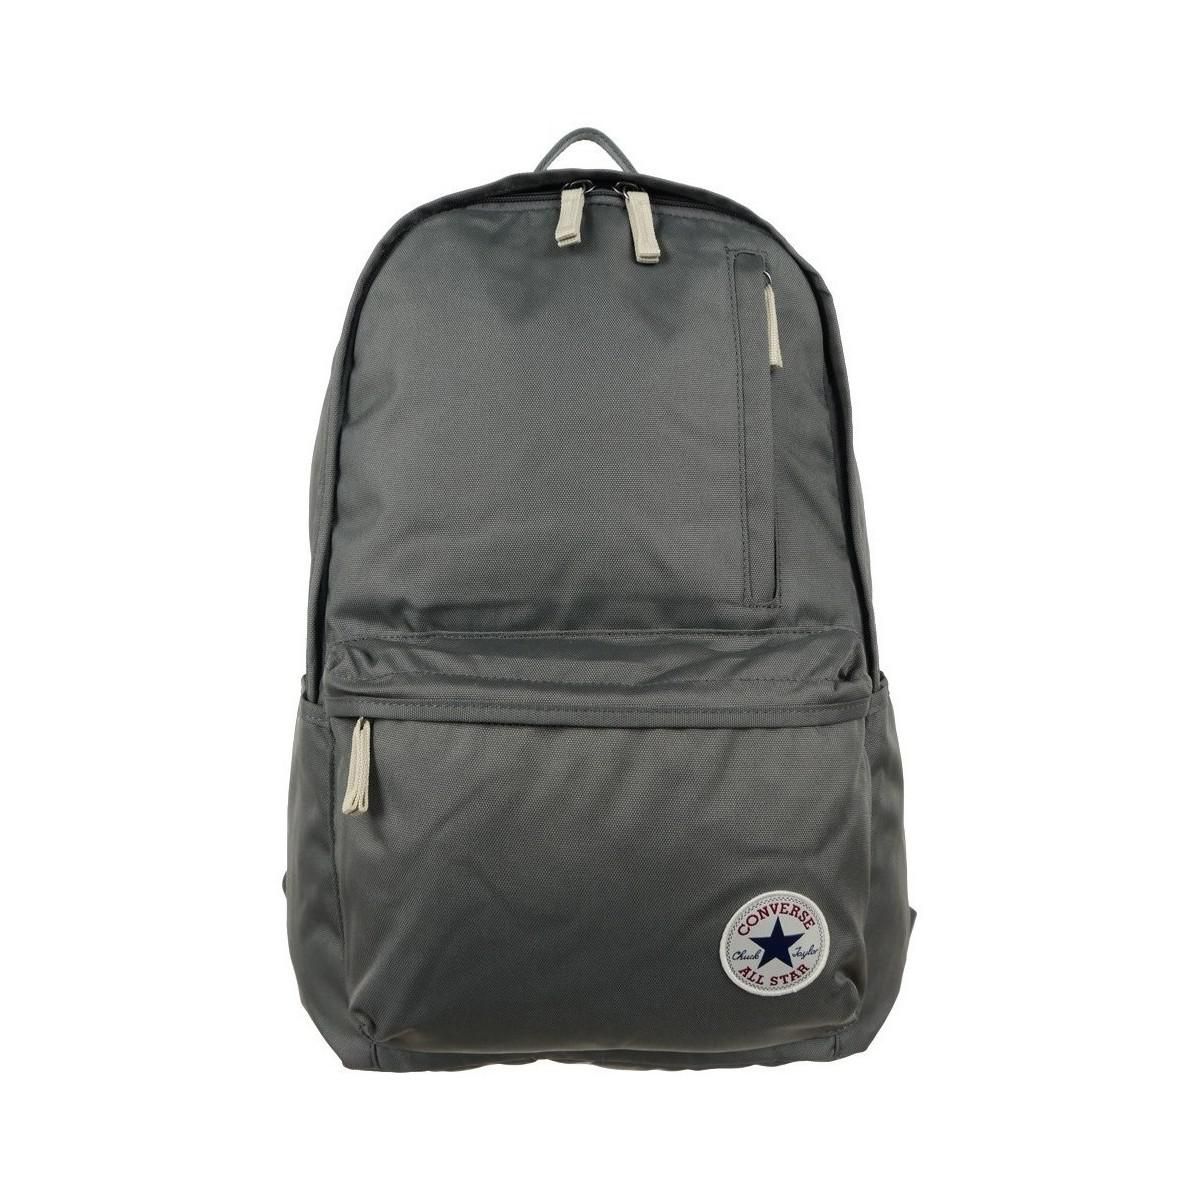 bf46b8fc021 Converse Original Backpack Core Women s Backpack In Grey in Gray - Lyst